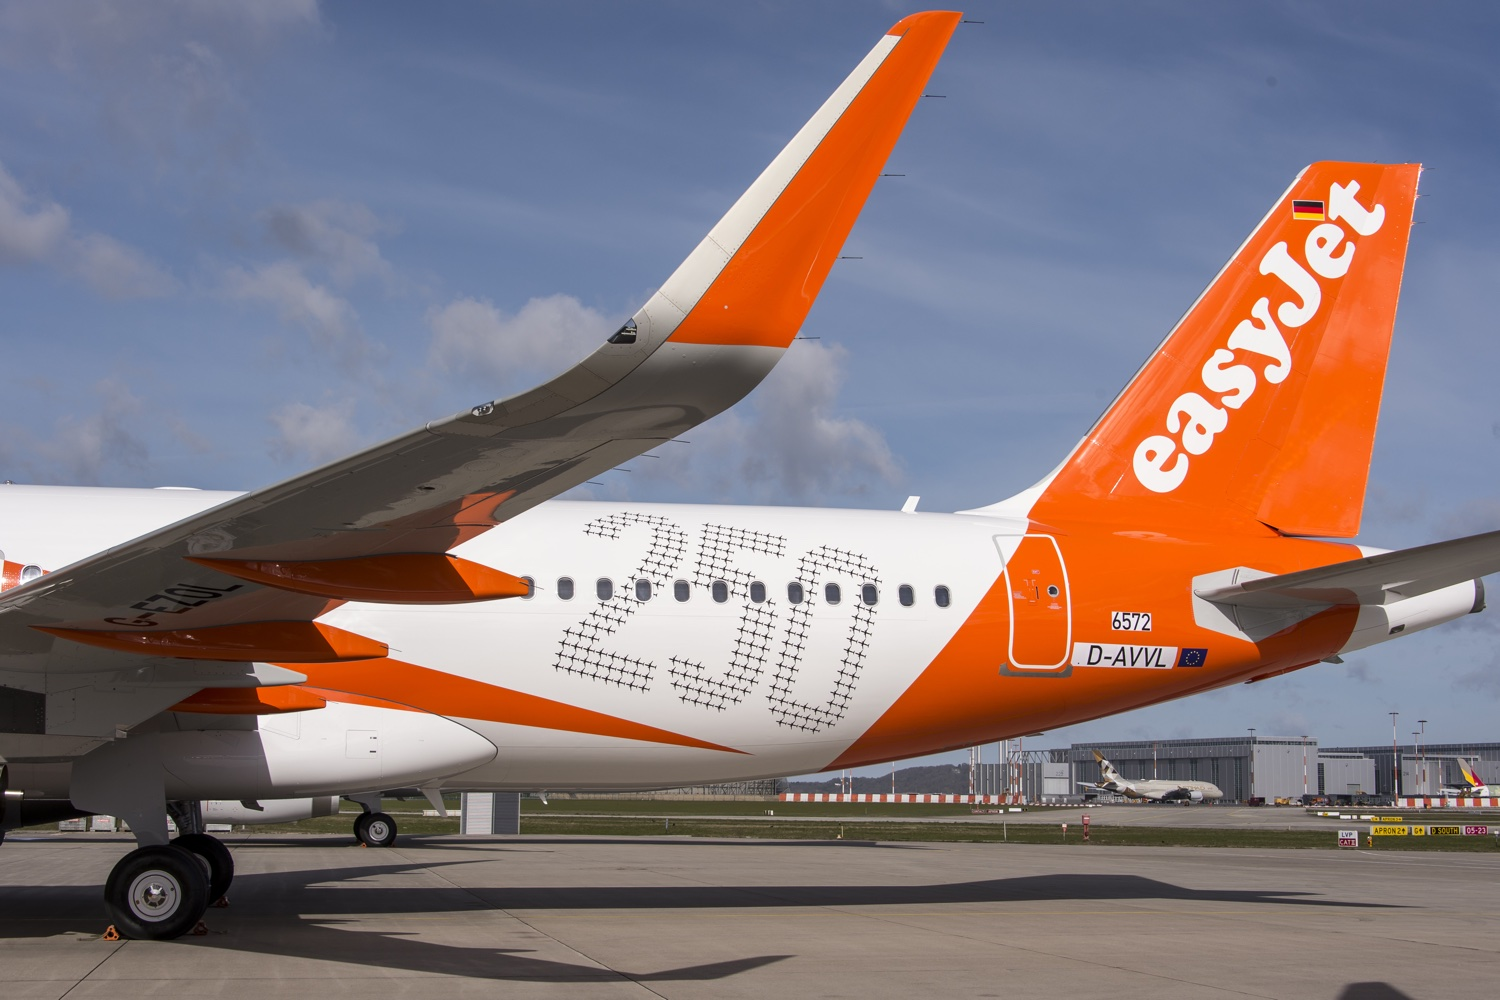 easyJet's 250th Airbus carries special titles